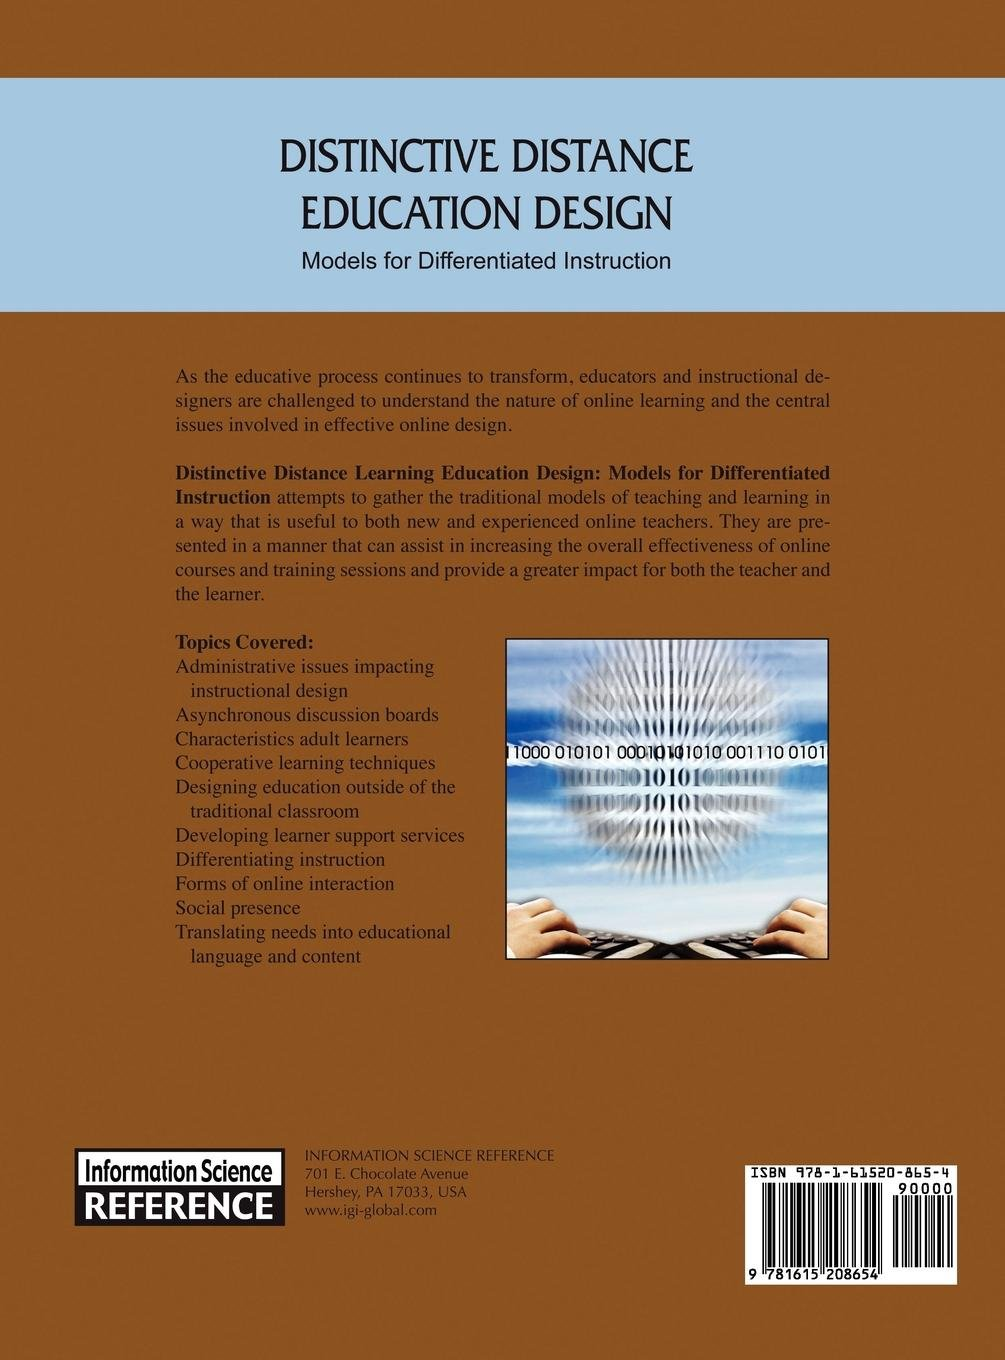 Distinctive Distance Education Design: Models for Differentiated Instruction